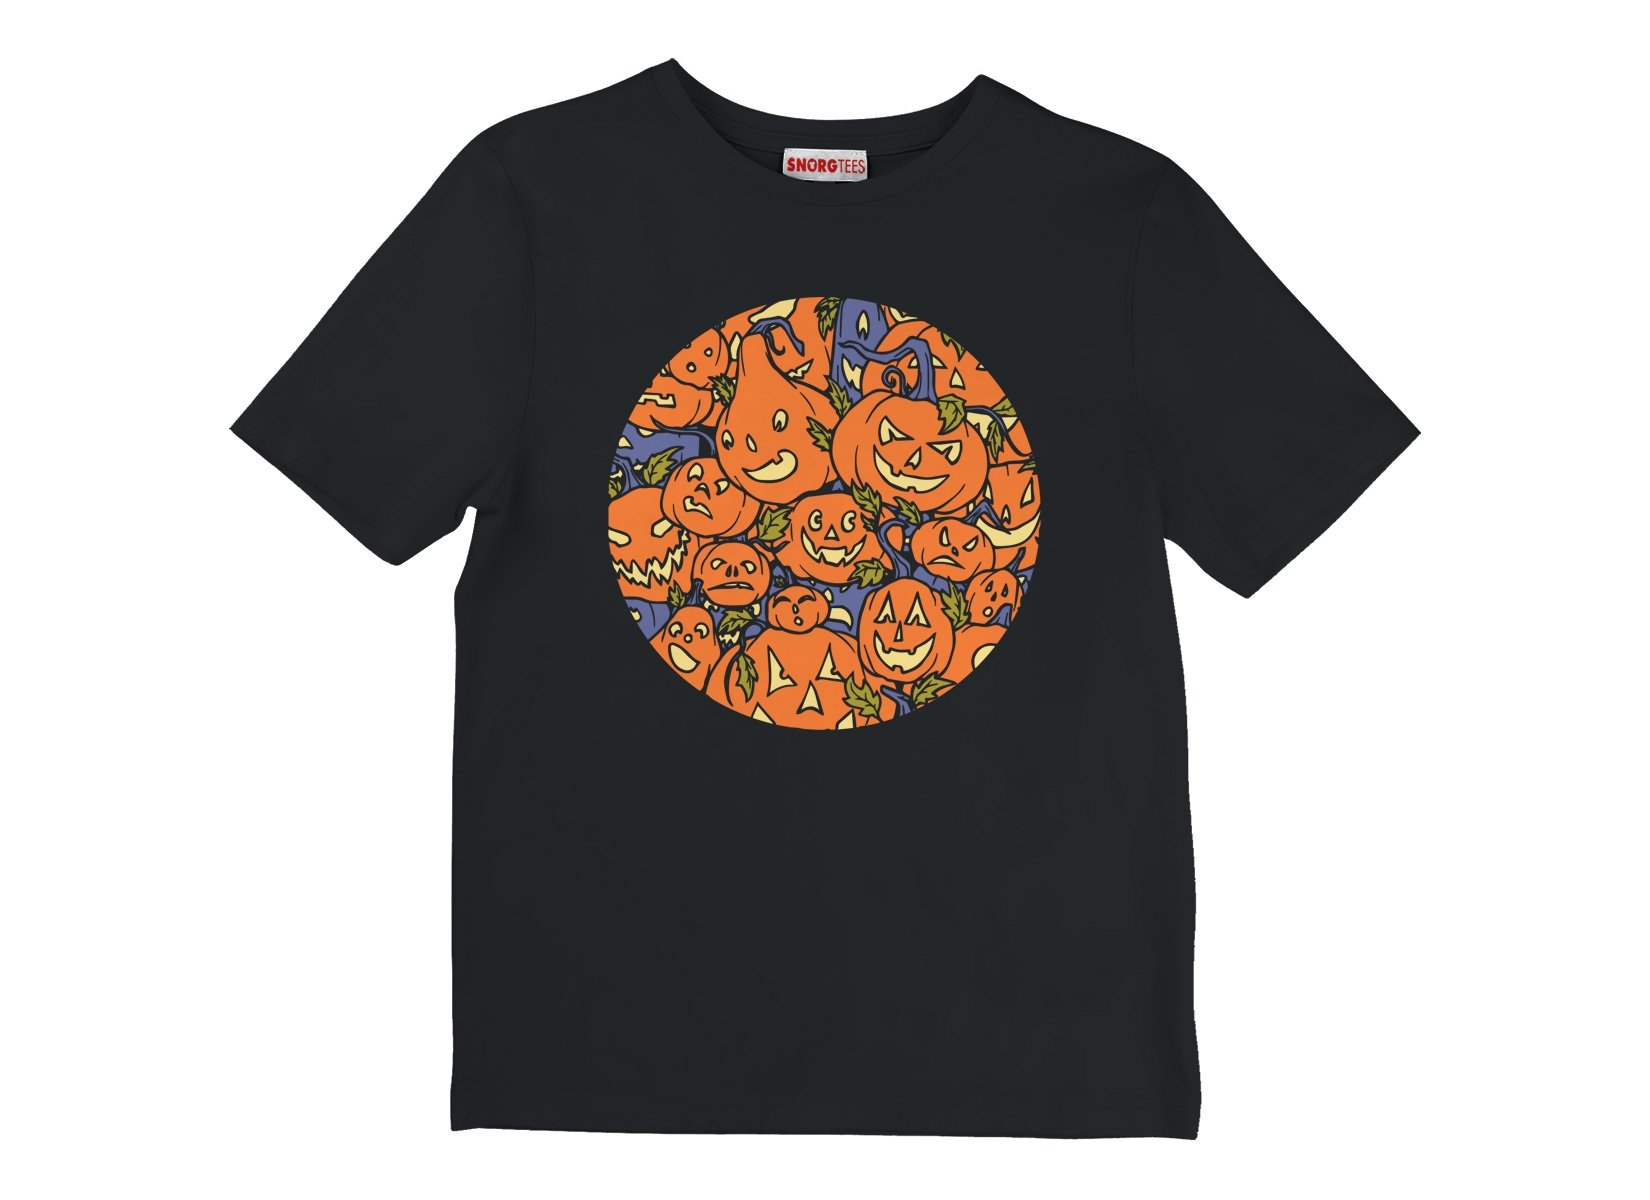 Jack-O-Lanterns on Kids T-Shirt